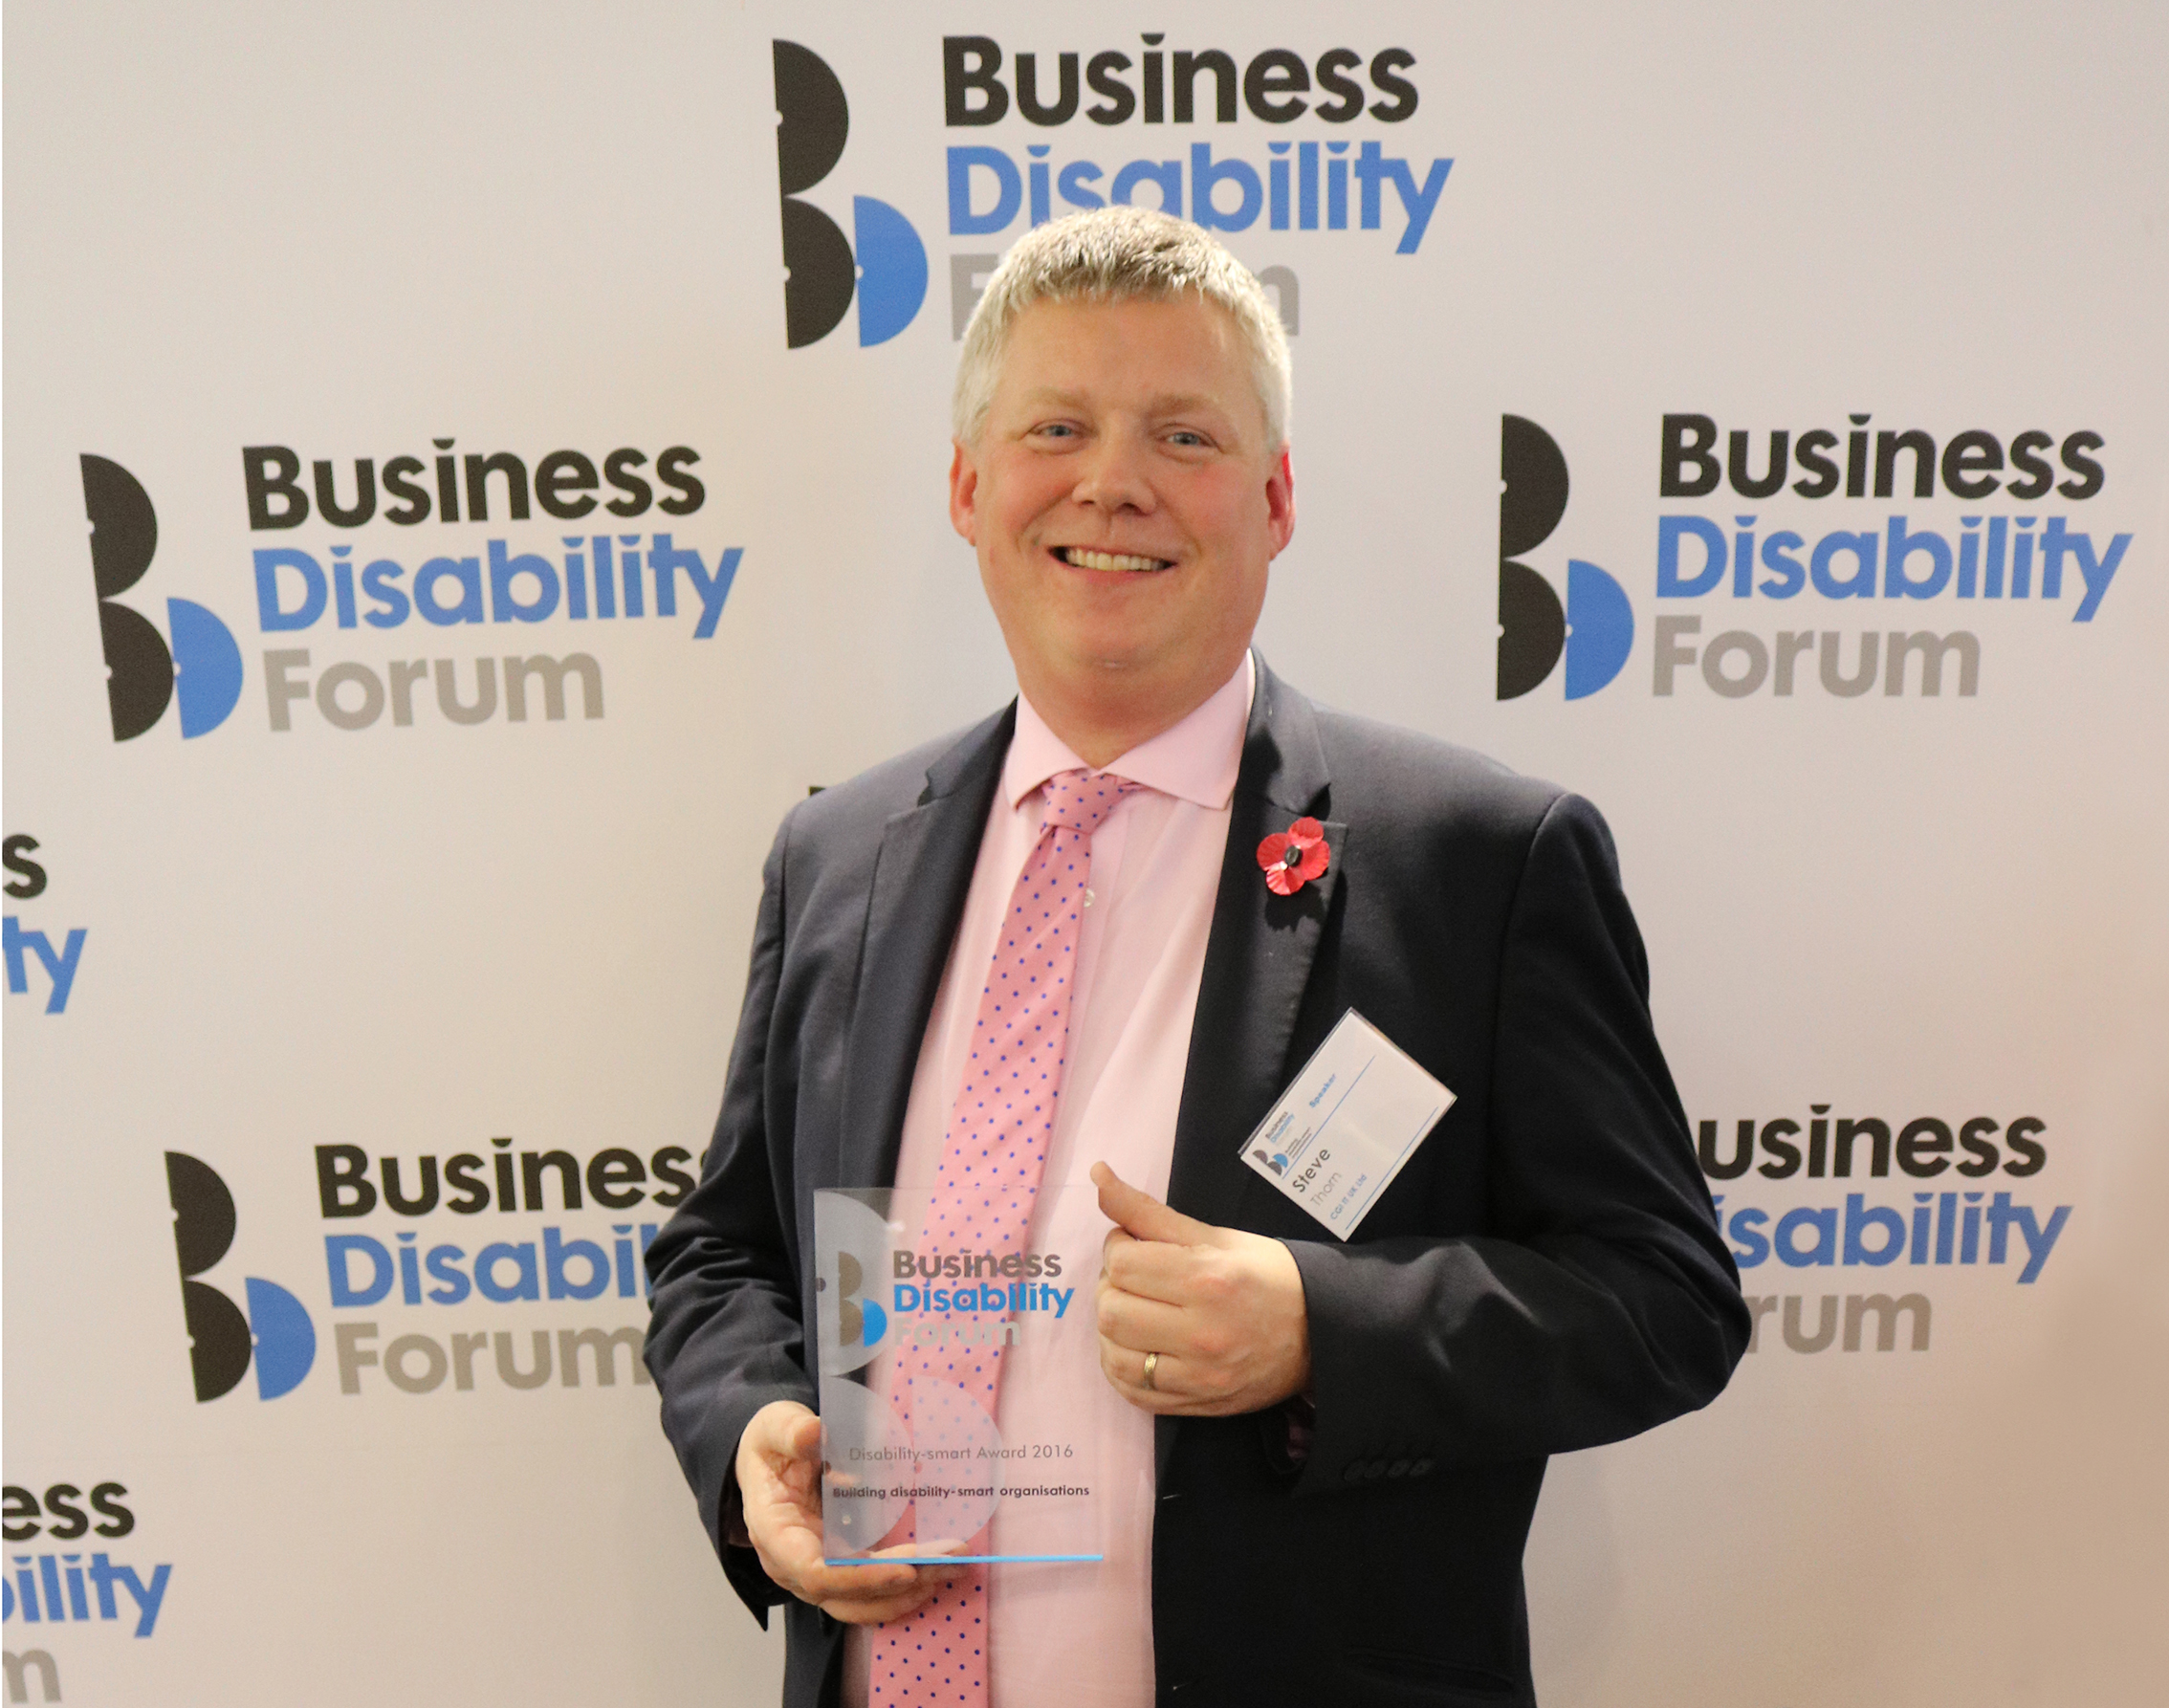 Steve Thorn wins Disability-smart award for his commitment to disability in business